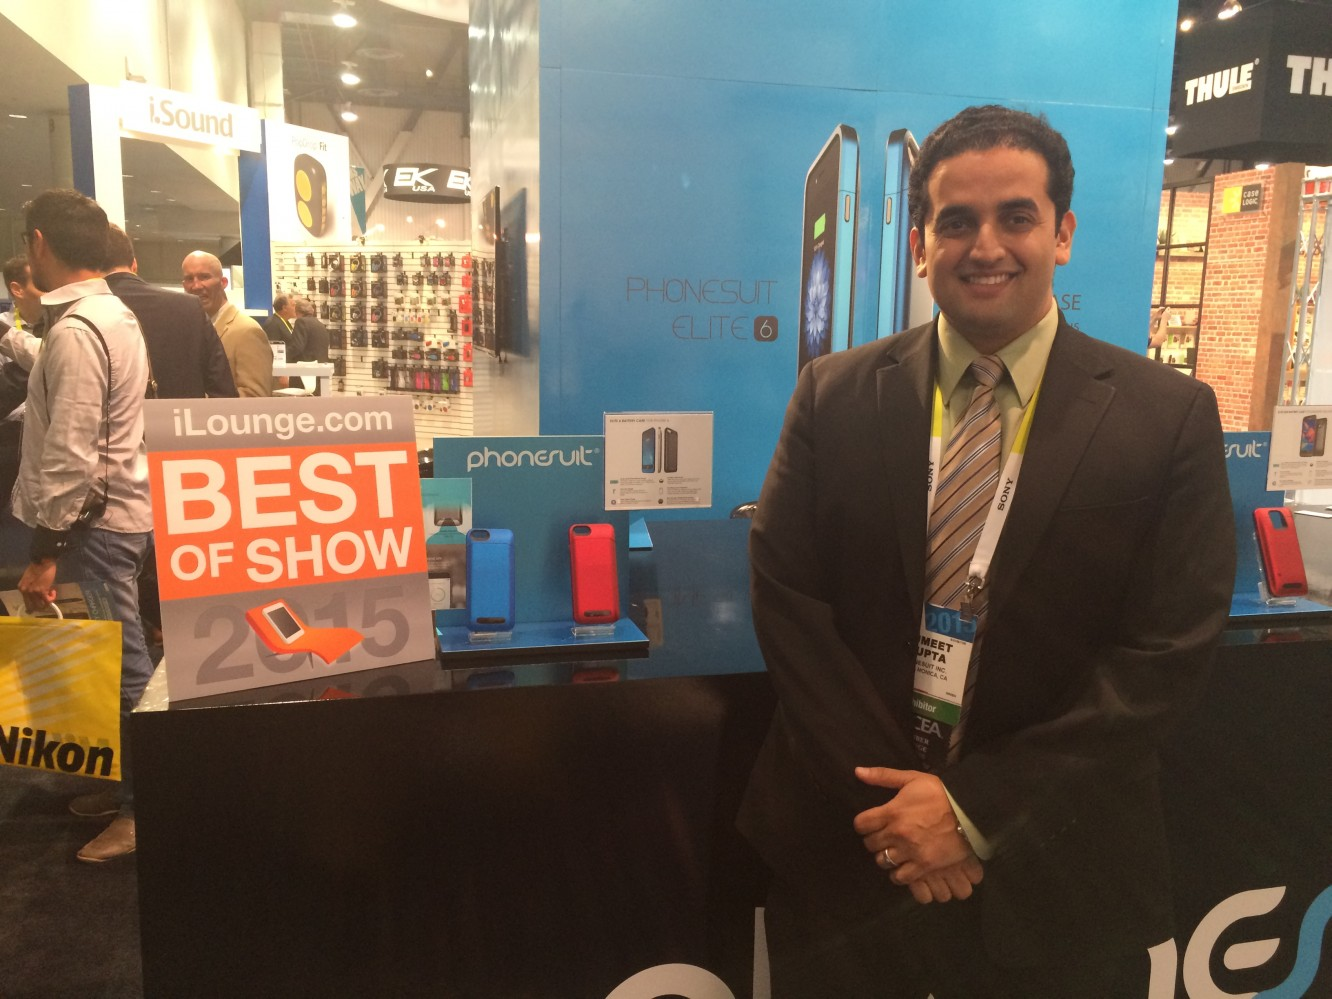 iLounge announces its CES 2015 Best of Show Awards 6